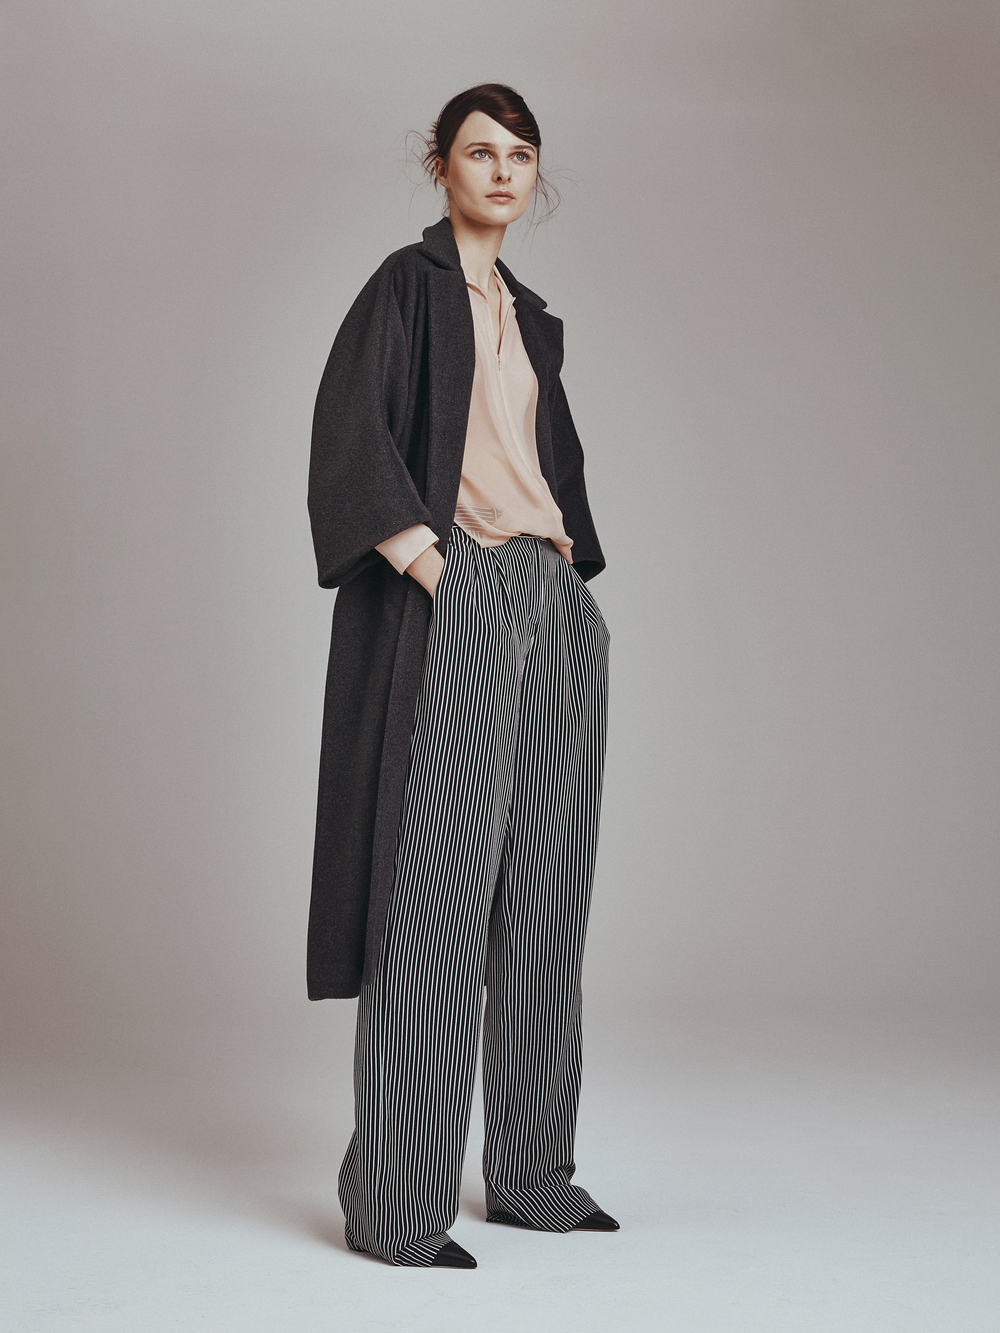 MEAGAN COAT  Lustrous Melton Wool  -   JESSICA TOP  Chiffon  -   JASPER PANTS  Crepe de Chine      Contact for inquiry